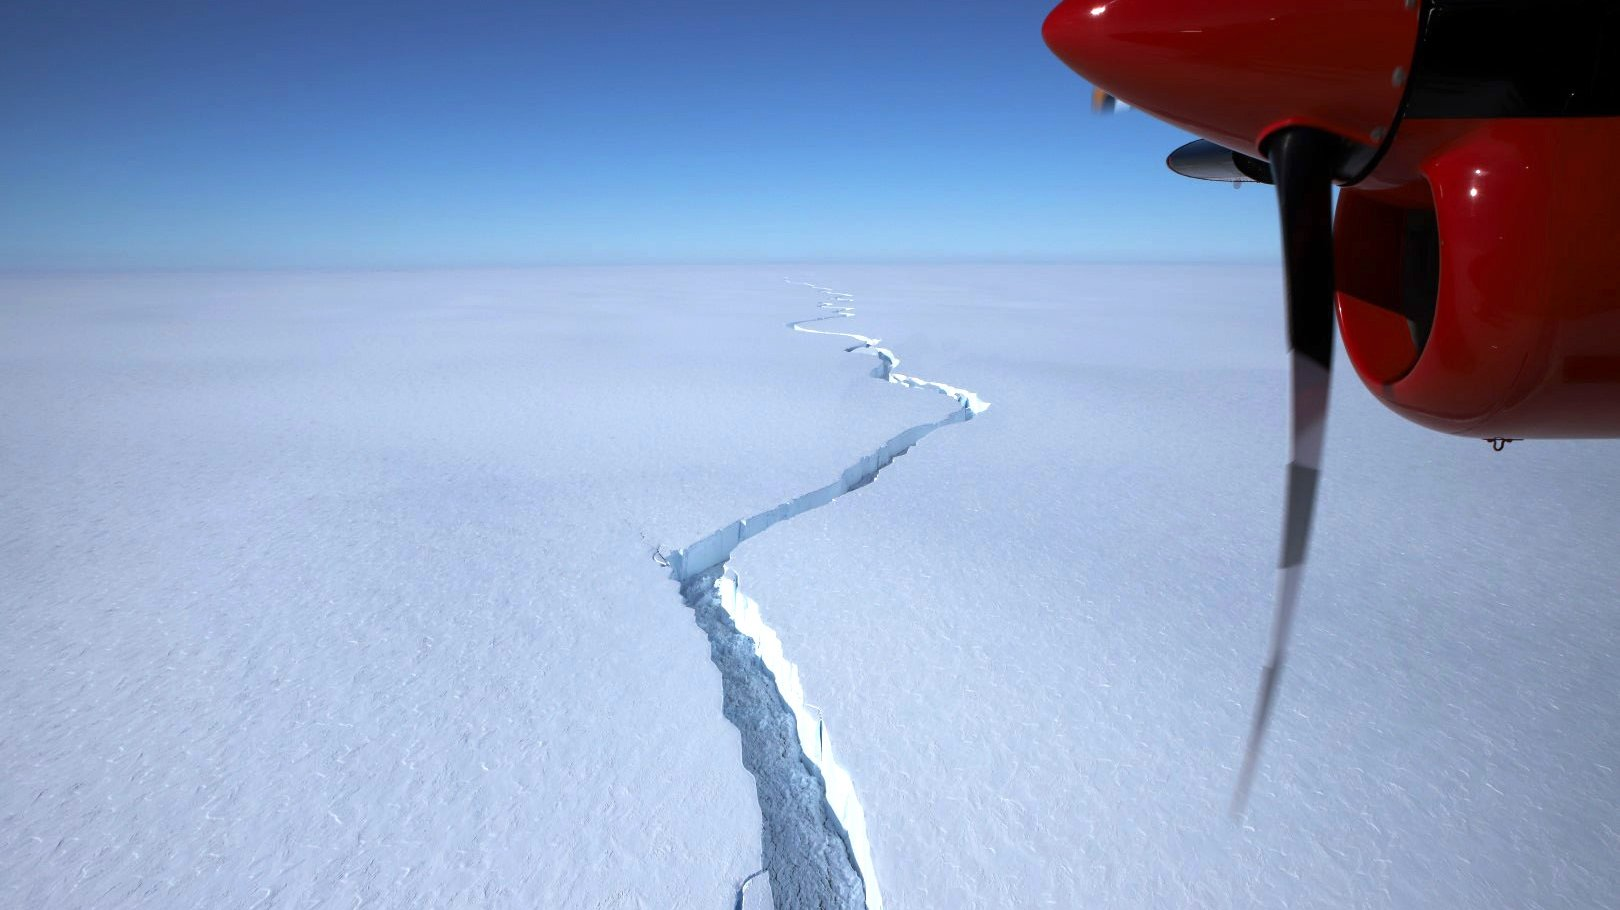 epa09044808 A handout photo made available by the British Antarctic Survey (BAS) shows a crack in the Brunt Ice Shelf during flyover on 12 January 2021 (issued 01 March 2021). An iceberg of approximately 1,270 square kilometers split from the Brunt Ice Shelf on 26 February 2021.  EPA/AVANKINTS/BAS / HANDOUT  HANDOUT EDITORIAL USE ONLY/NO SALES